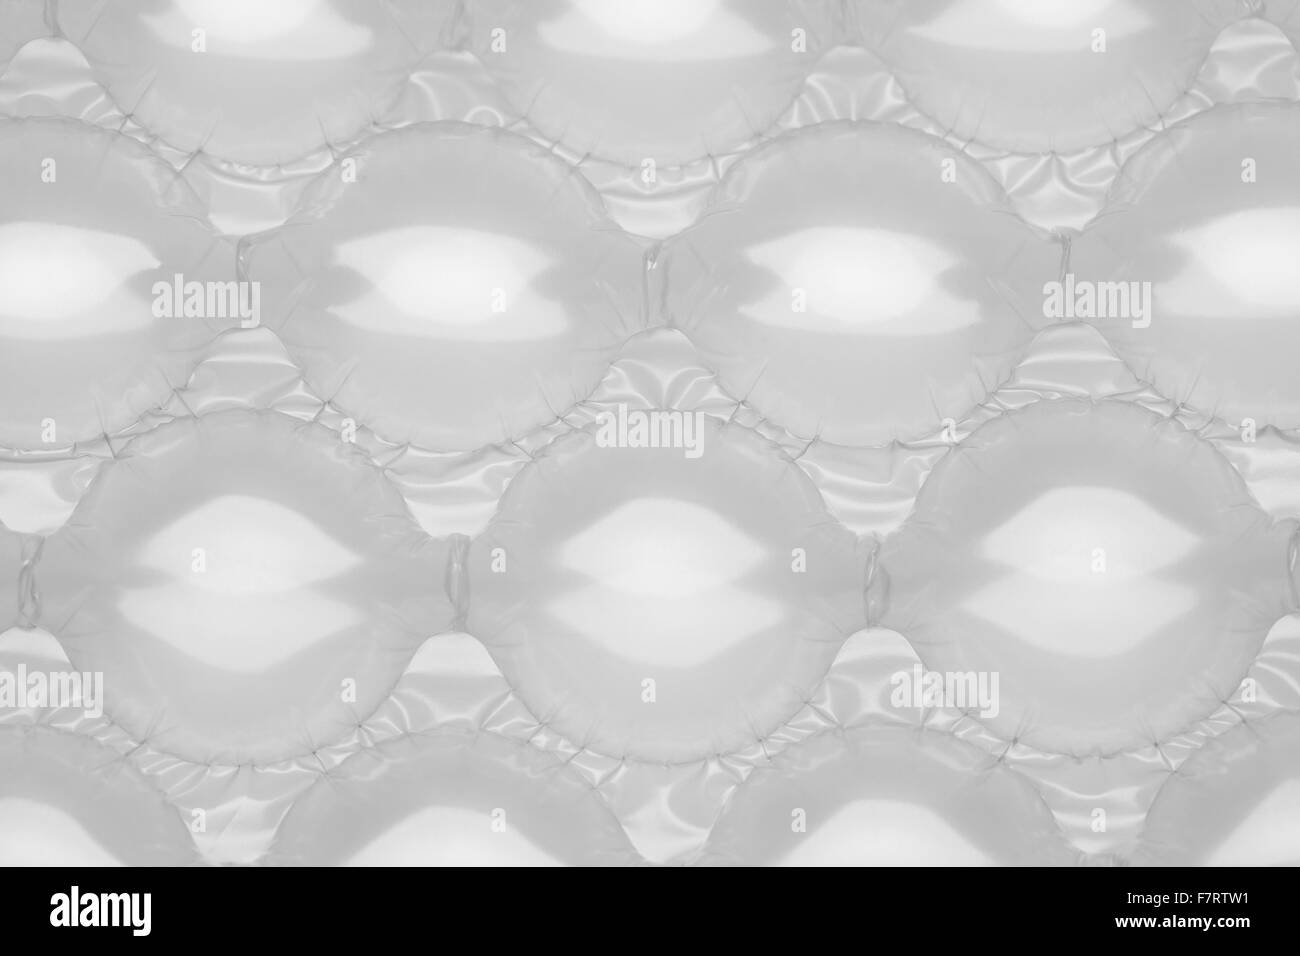 Clear Large Plastic Bubble Wrap Packaging Top View. - Stock Image